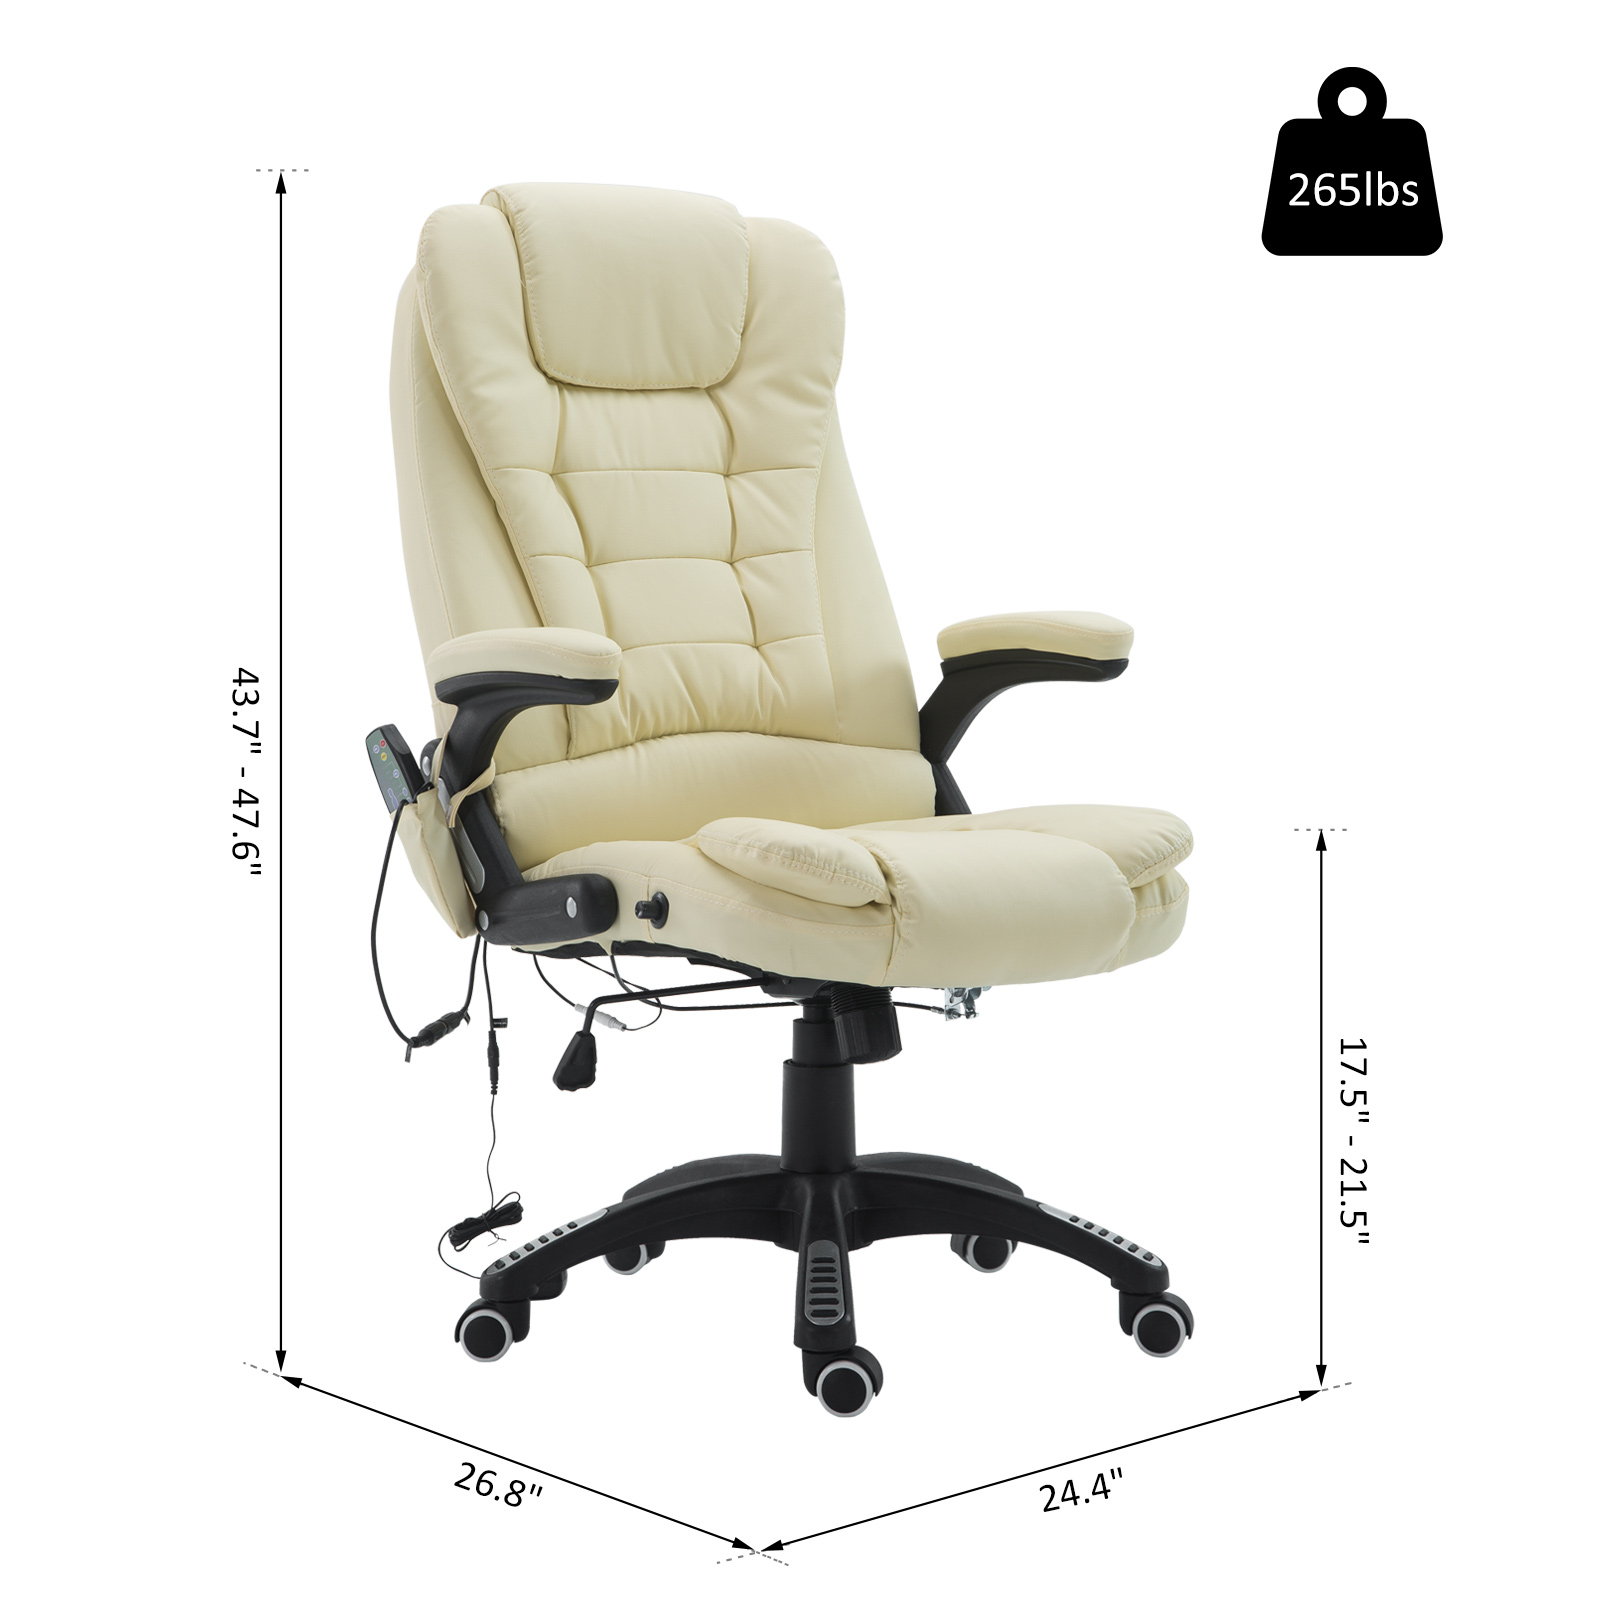 Home Office Computer Desk Massage Chair Executive Ergonomic Heated Vibrating Ebay